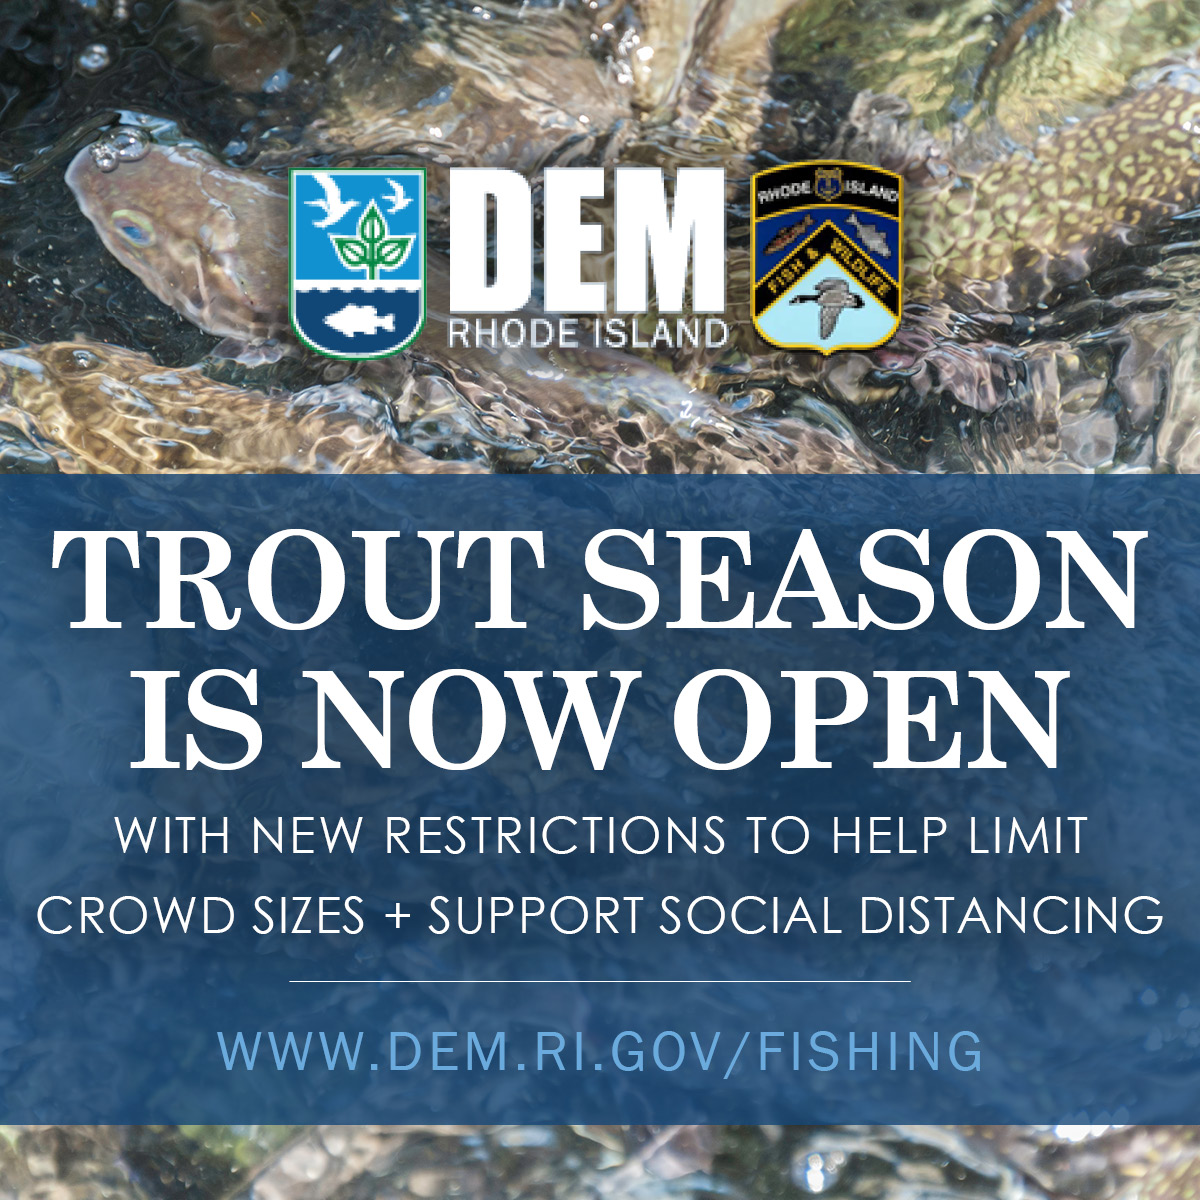 Trout fishing season is now open with restrictions to support social distancing rules